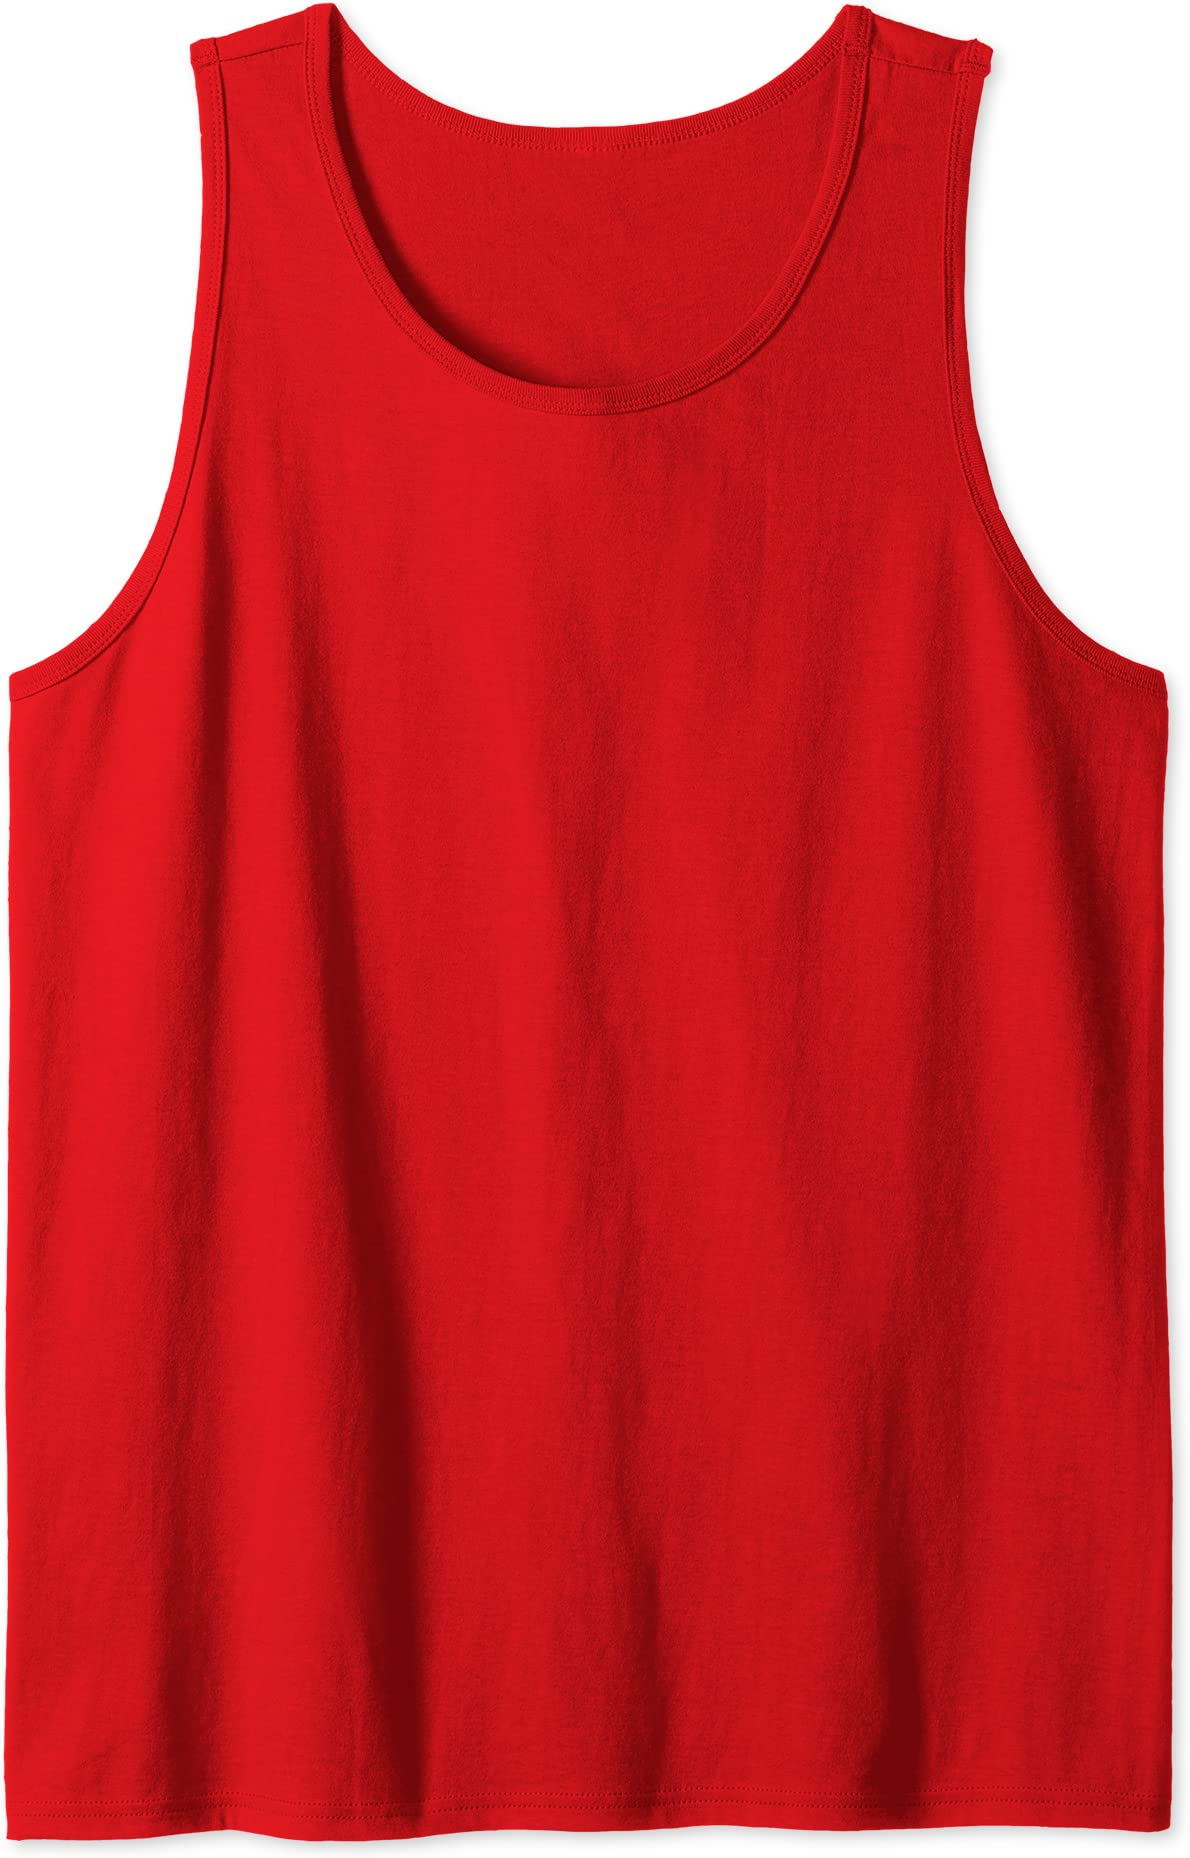 Superman SUPER KNOCKOUT Licensed Adult Tank Top All Sizes